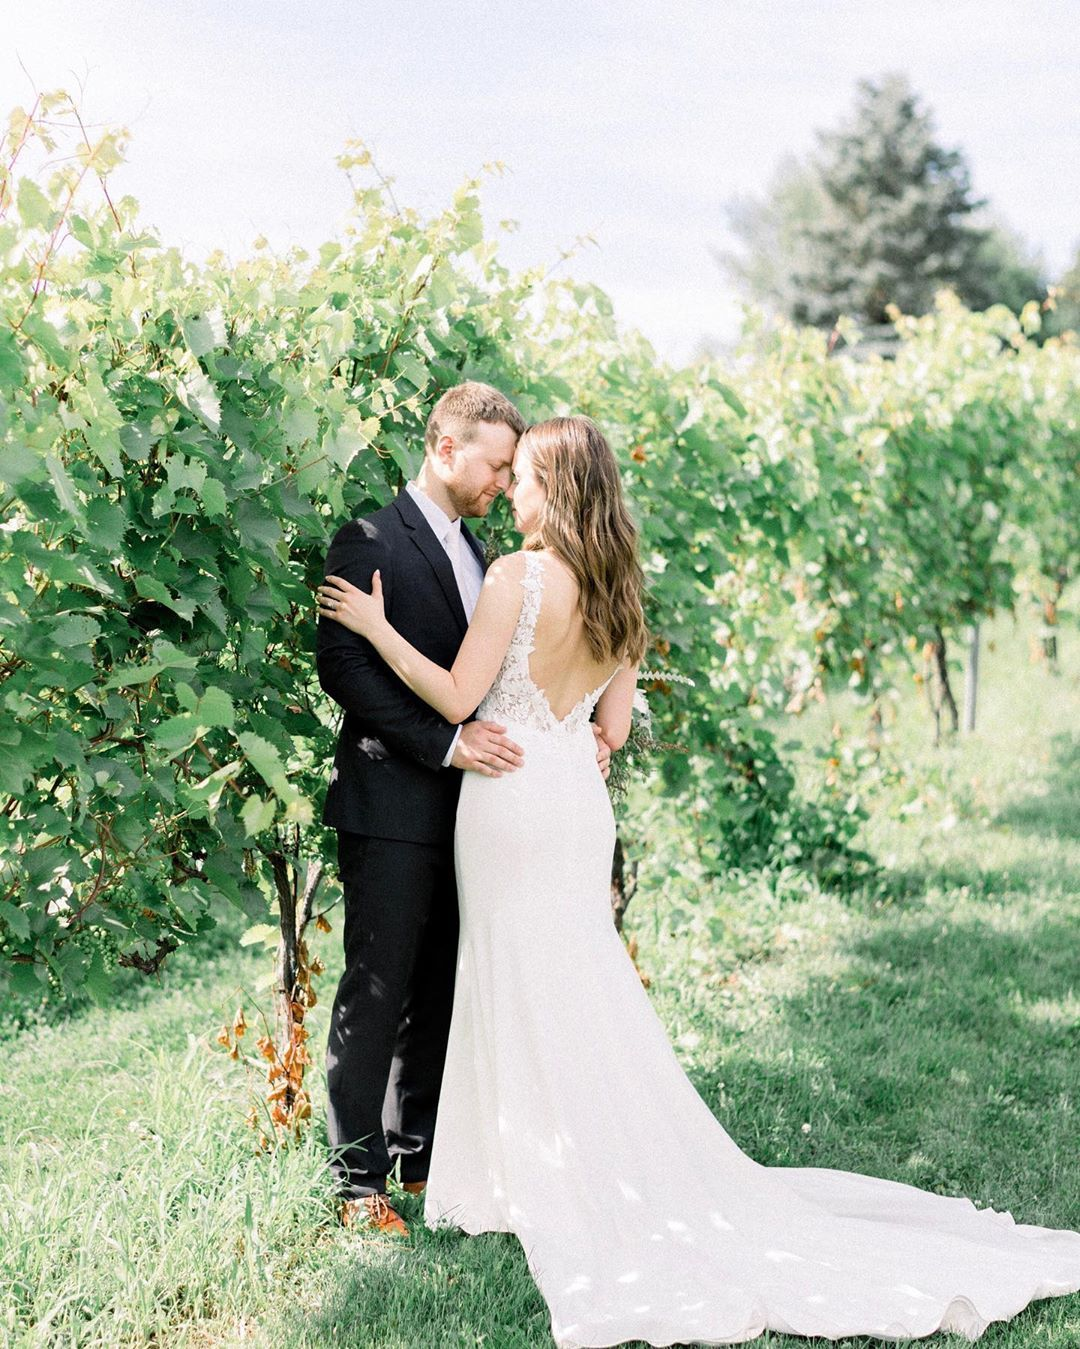 More Weddings In A Vineyard Please Did You Guys Know I Have A Dreams Section On The Stories In Wedding Bridesmaid Dresses Wedding Guest Dress Wedding Dresses [ 1349 x 1080 Pixel ]